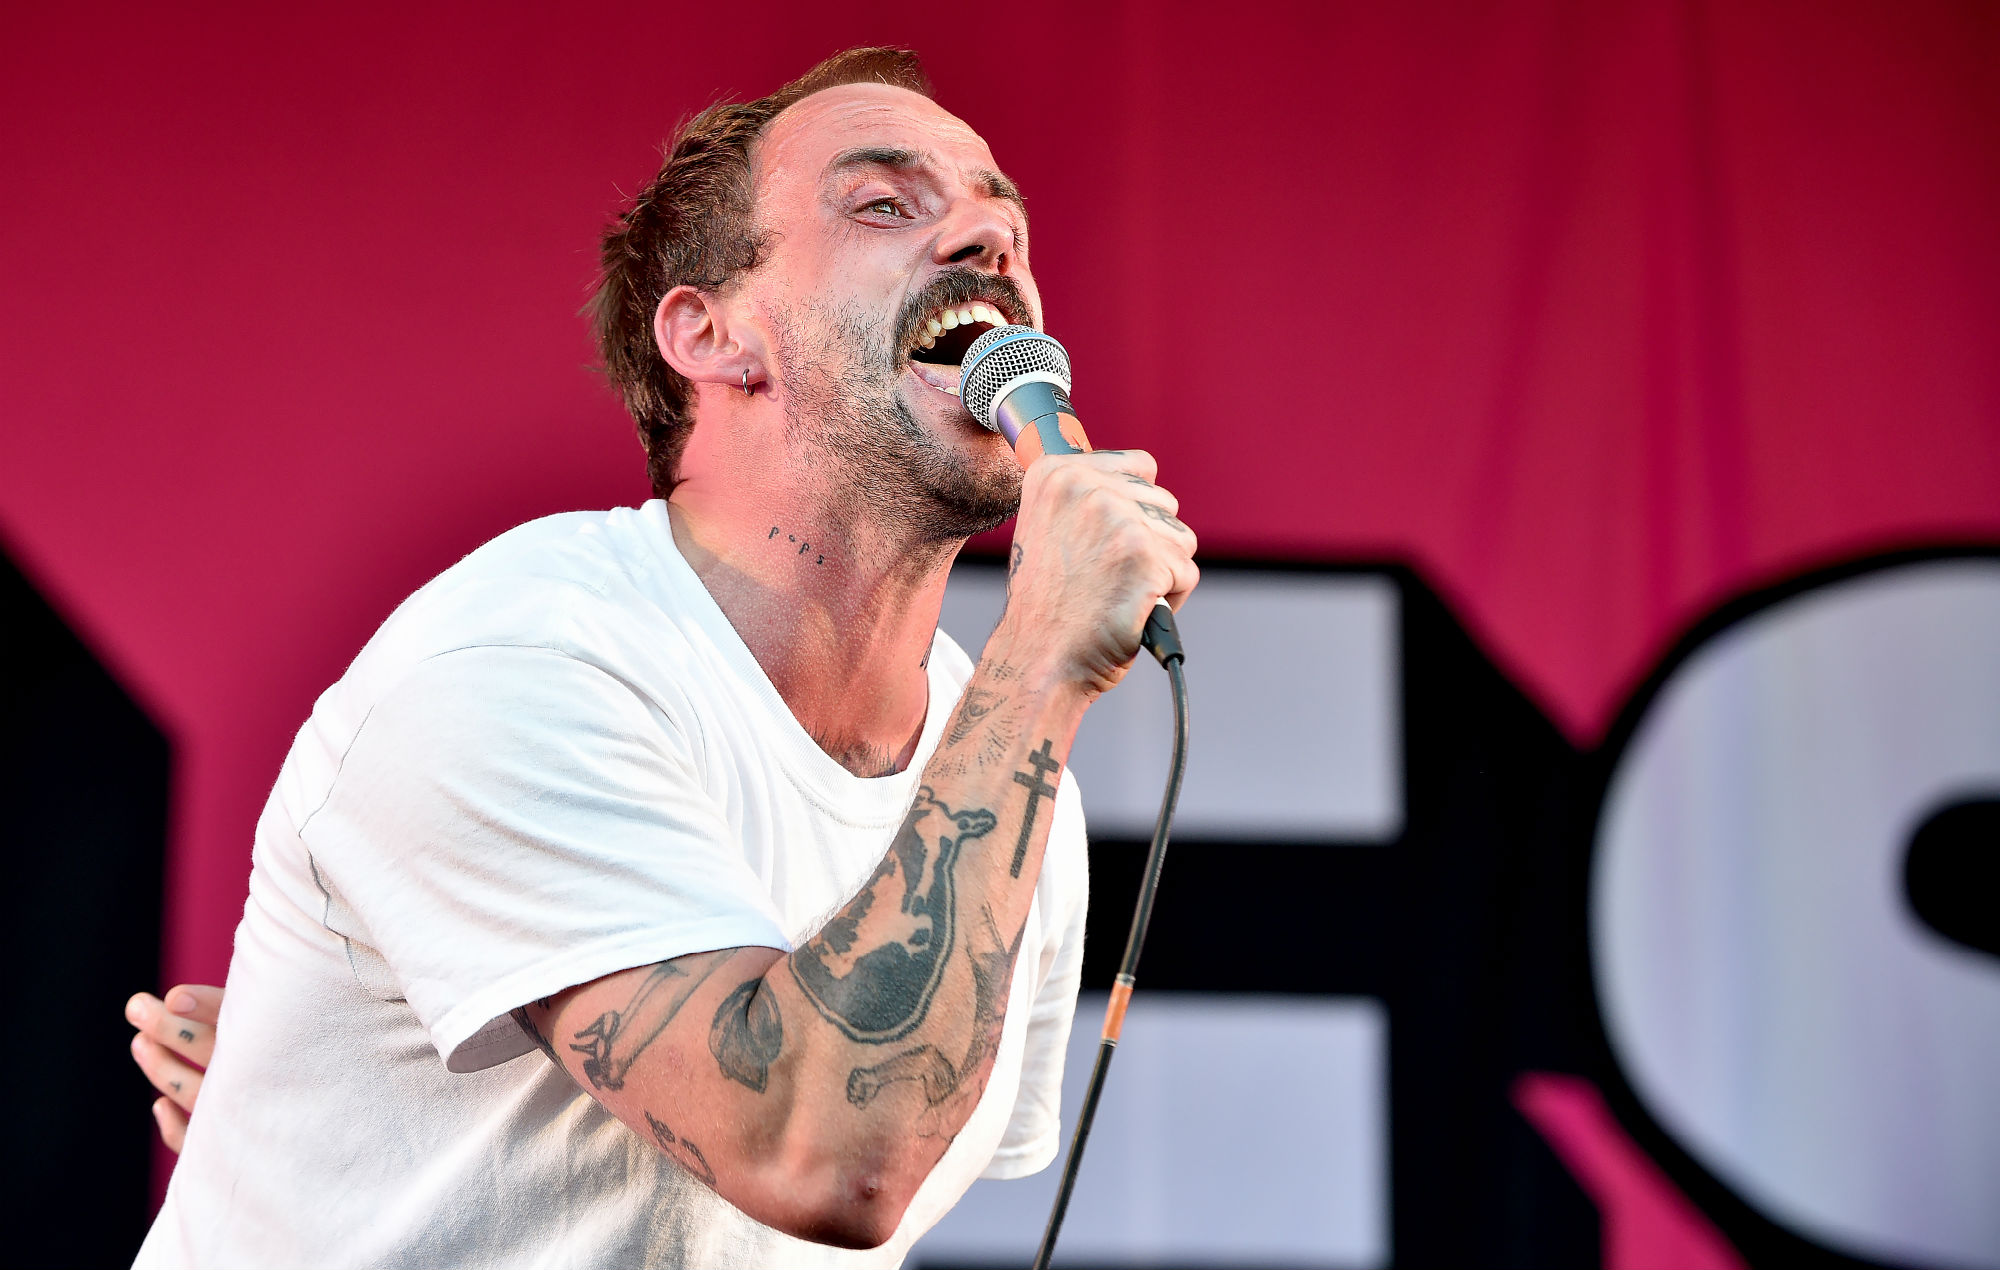 Idles are working with producer Kenny Beats on their third album